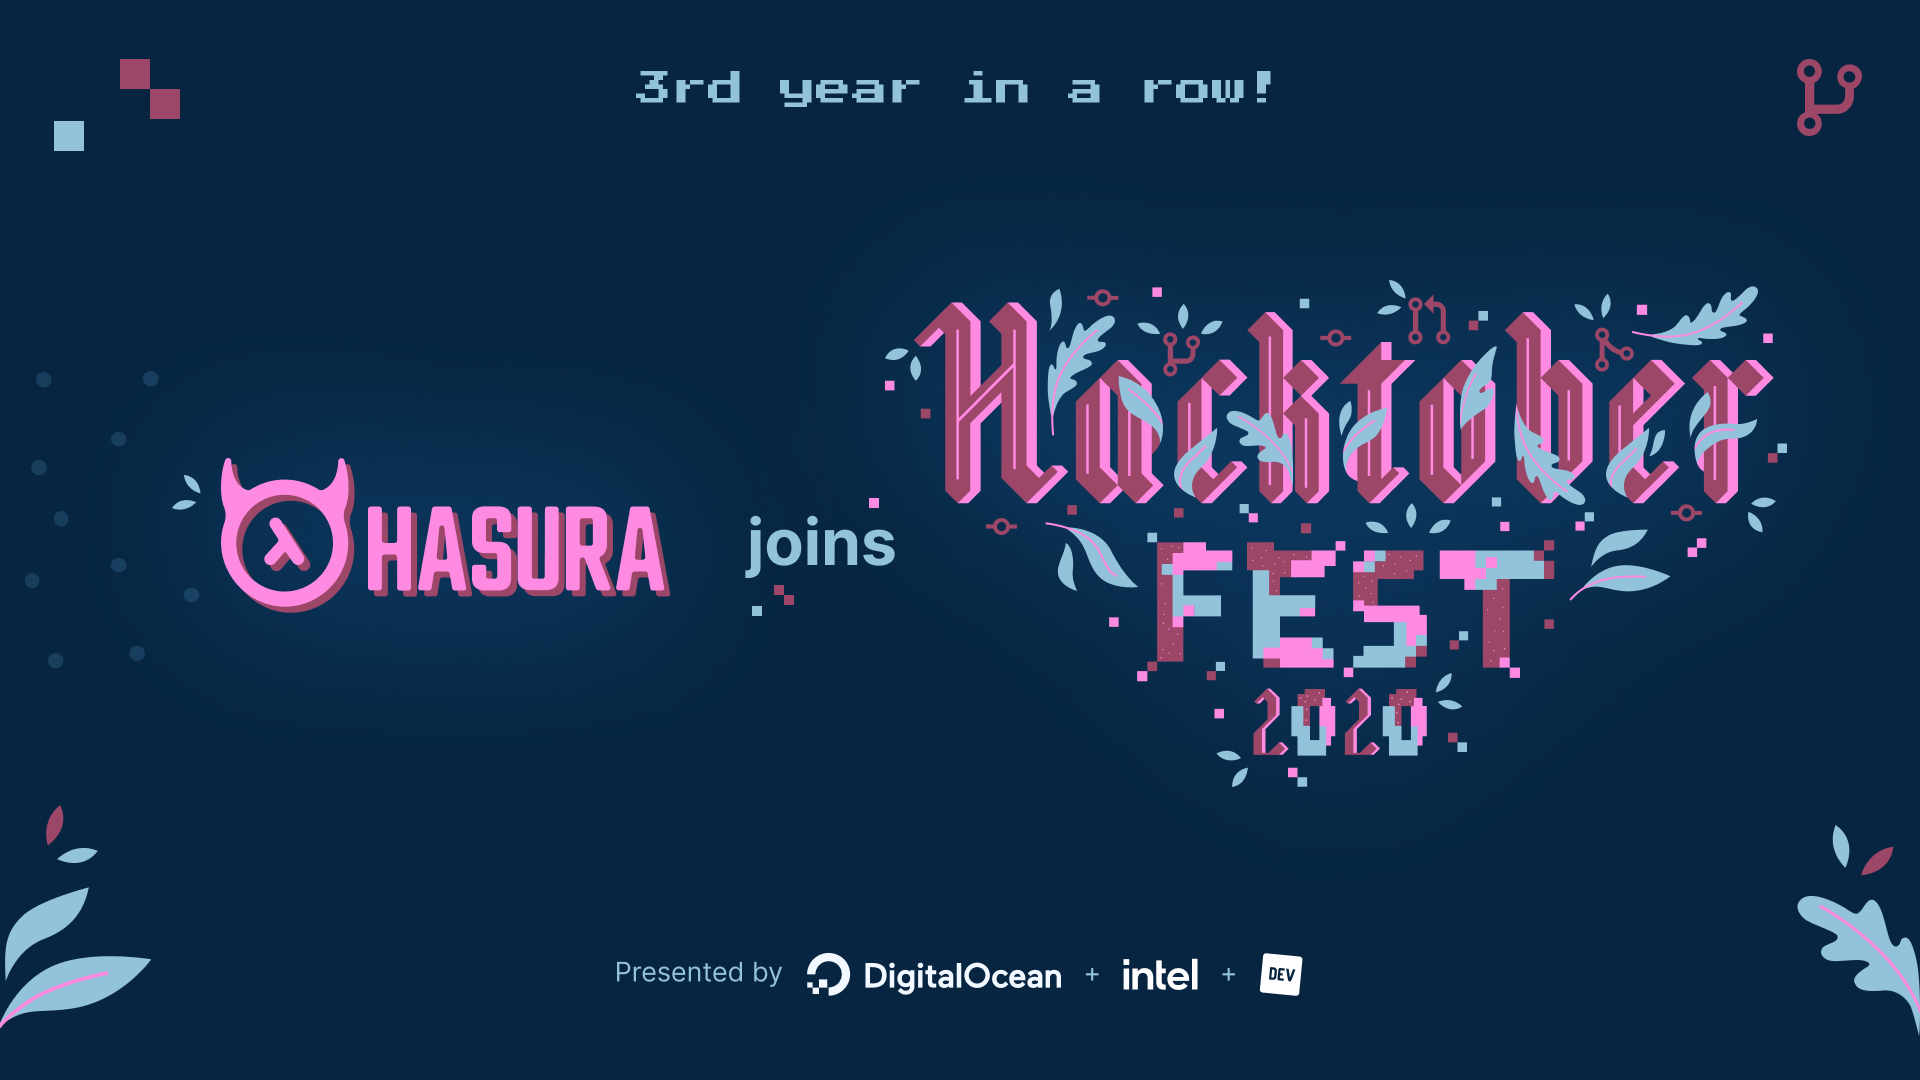 Hasura Joins Hacktoberfest: 3rd year in a row!